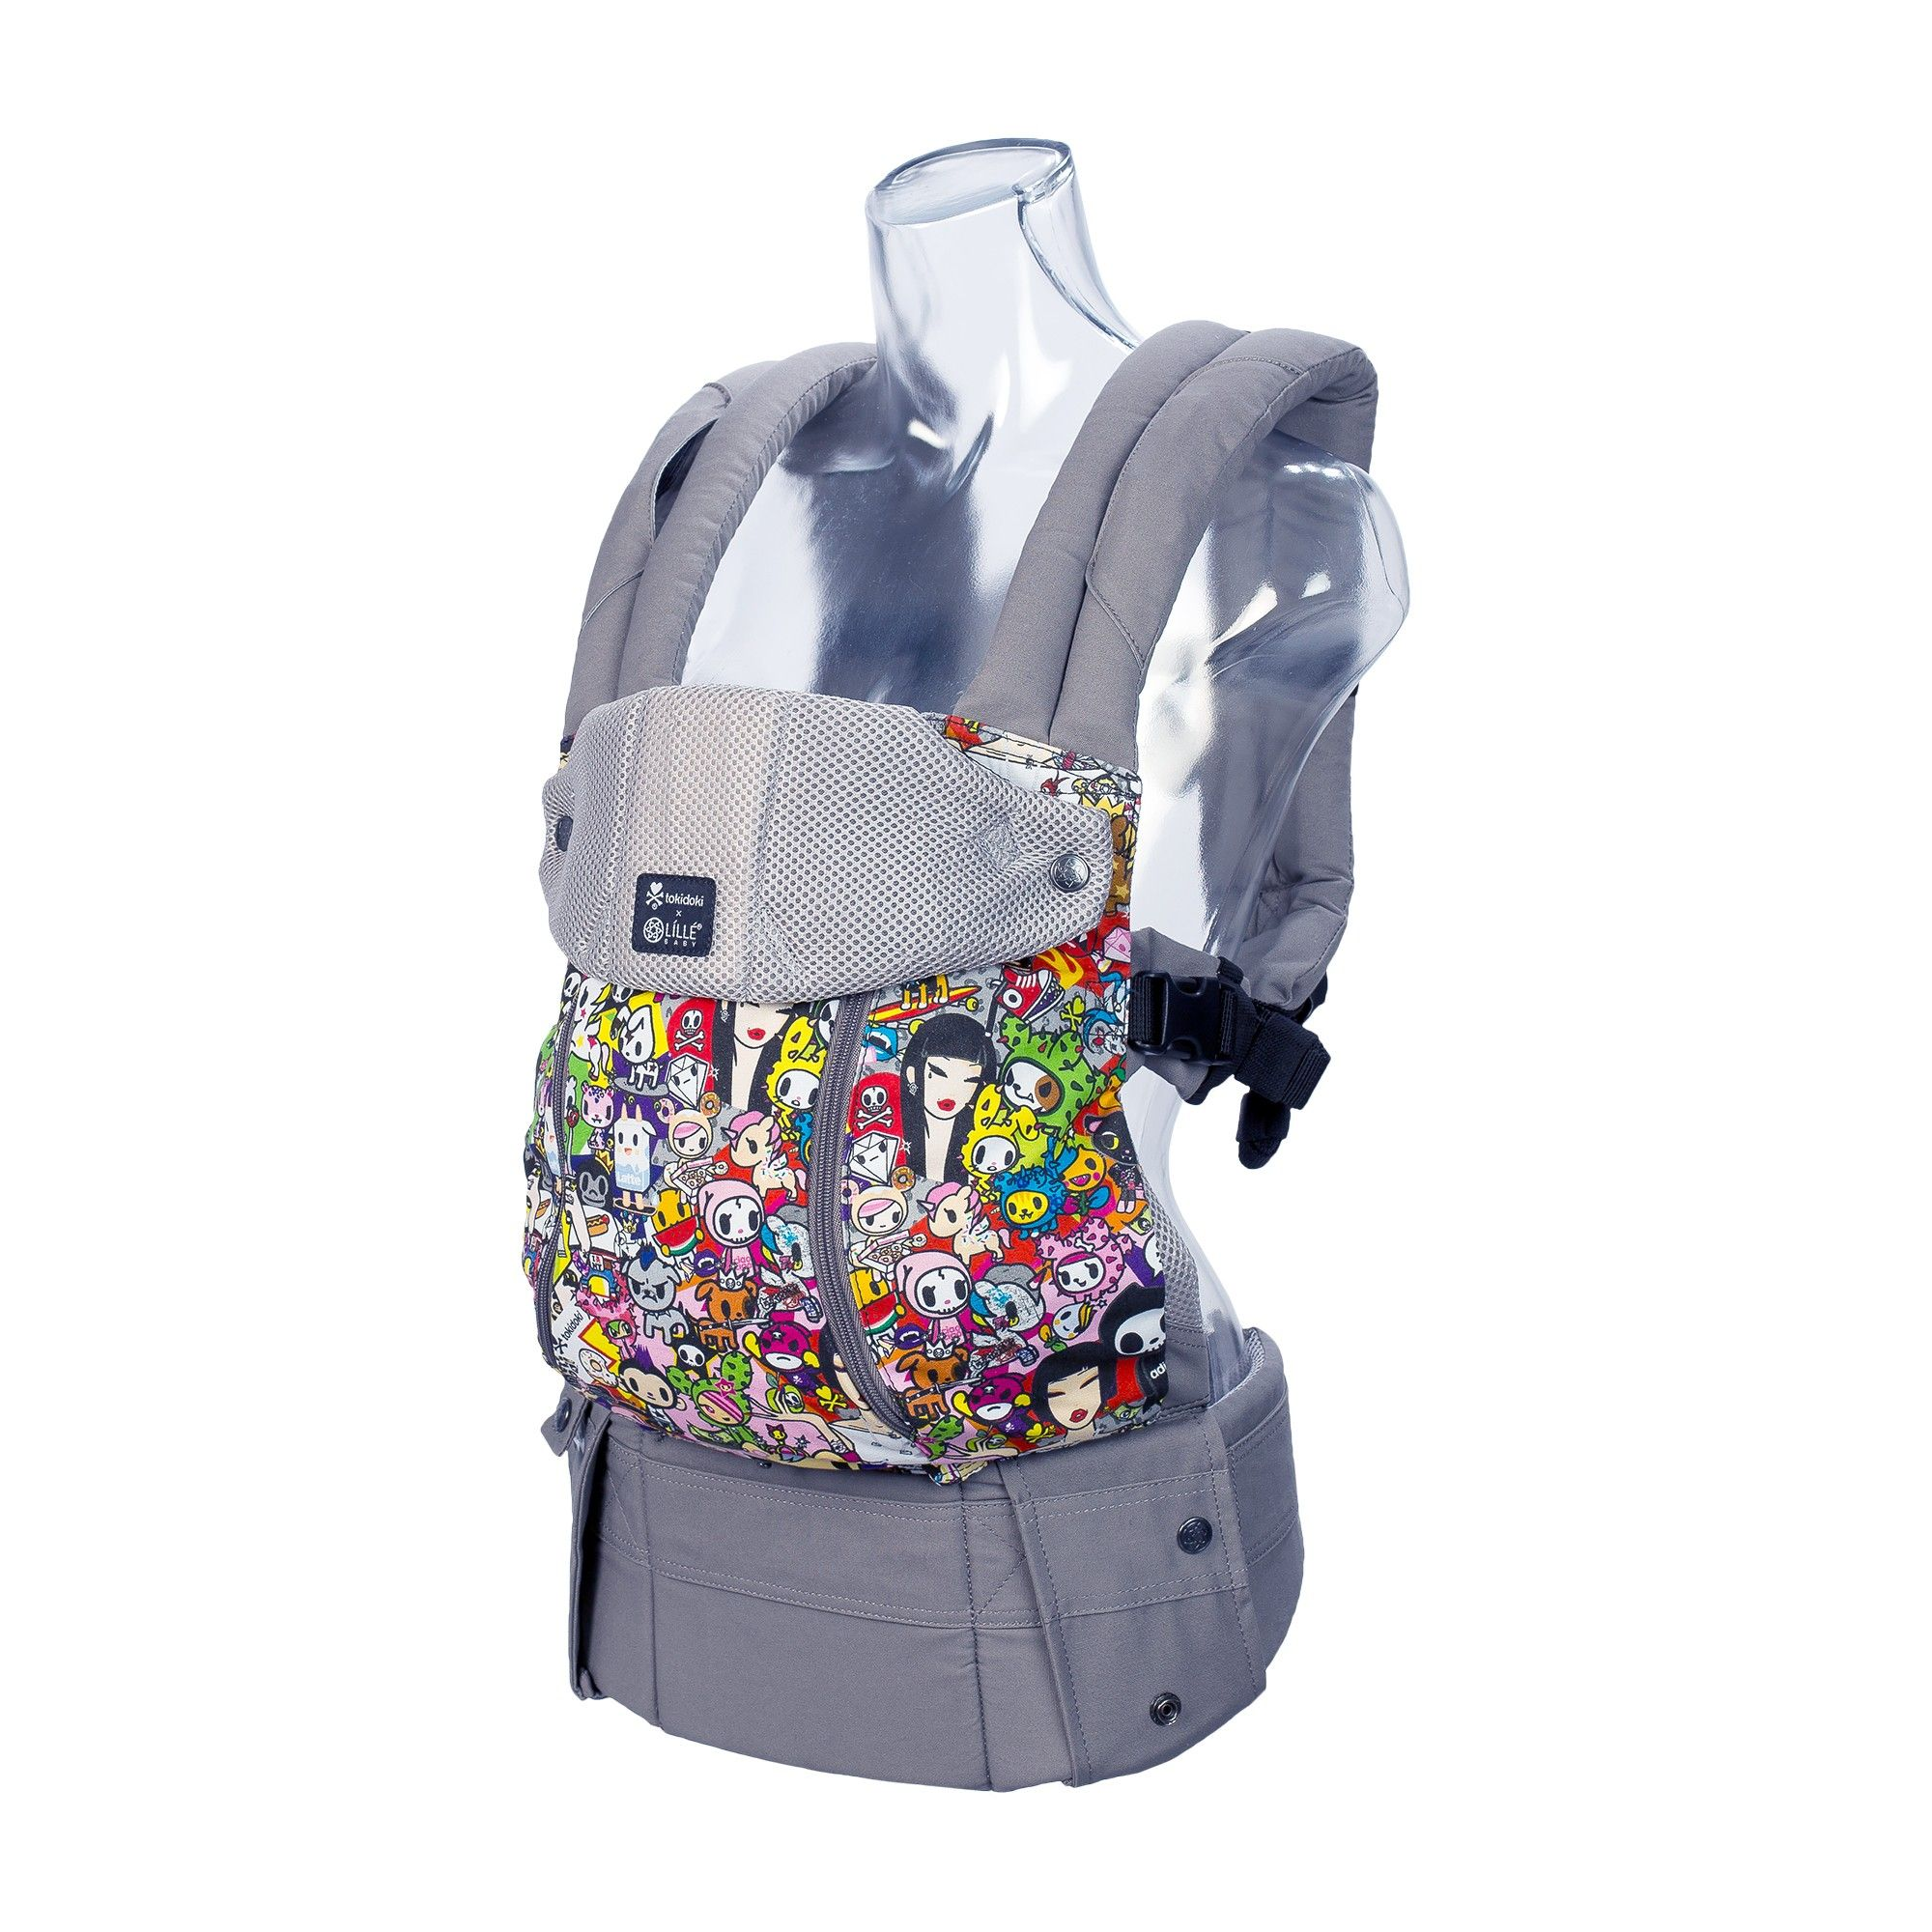 37f64088e11 tokidoki Iconic. LILLEbaby COMPLETE All Seasons - Most Versatile Carrier